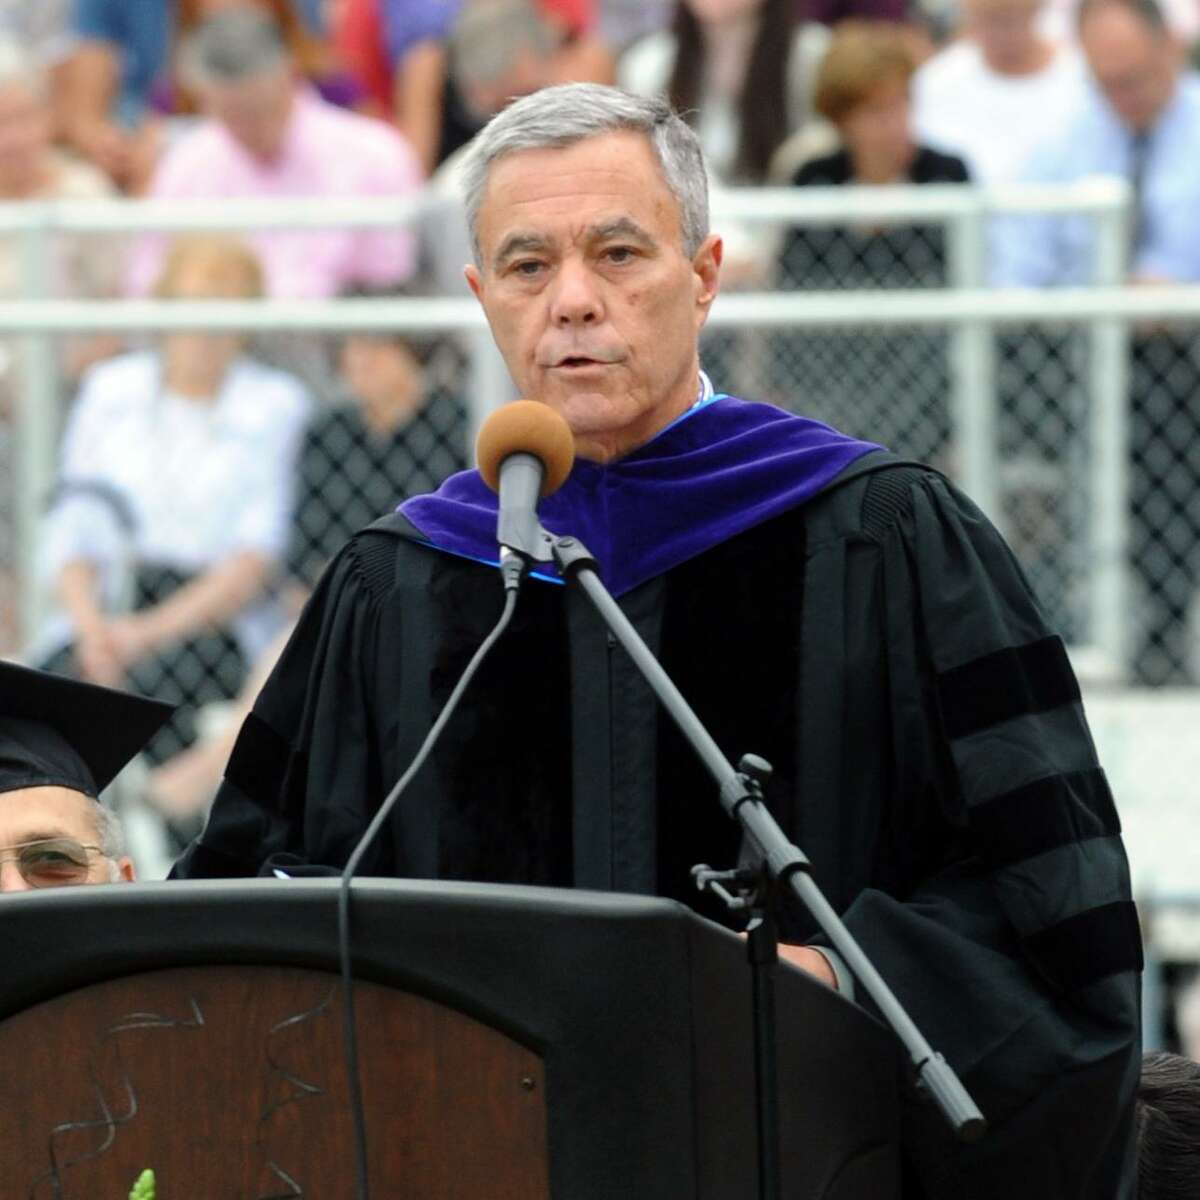 Stephen Wright, then Chairman of the Board of the Education at Trumbull High School's Class of 2012 graduation ceremony. Wright was arrested for violating his probation after serving a prison term for four drunken driving arrests in 12 weeks.